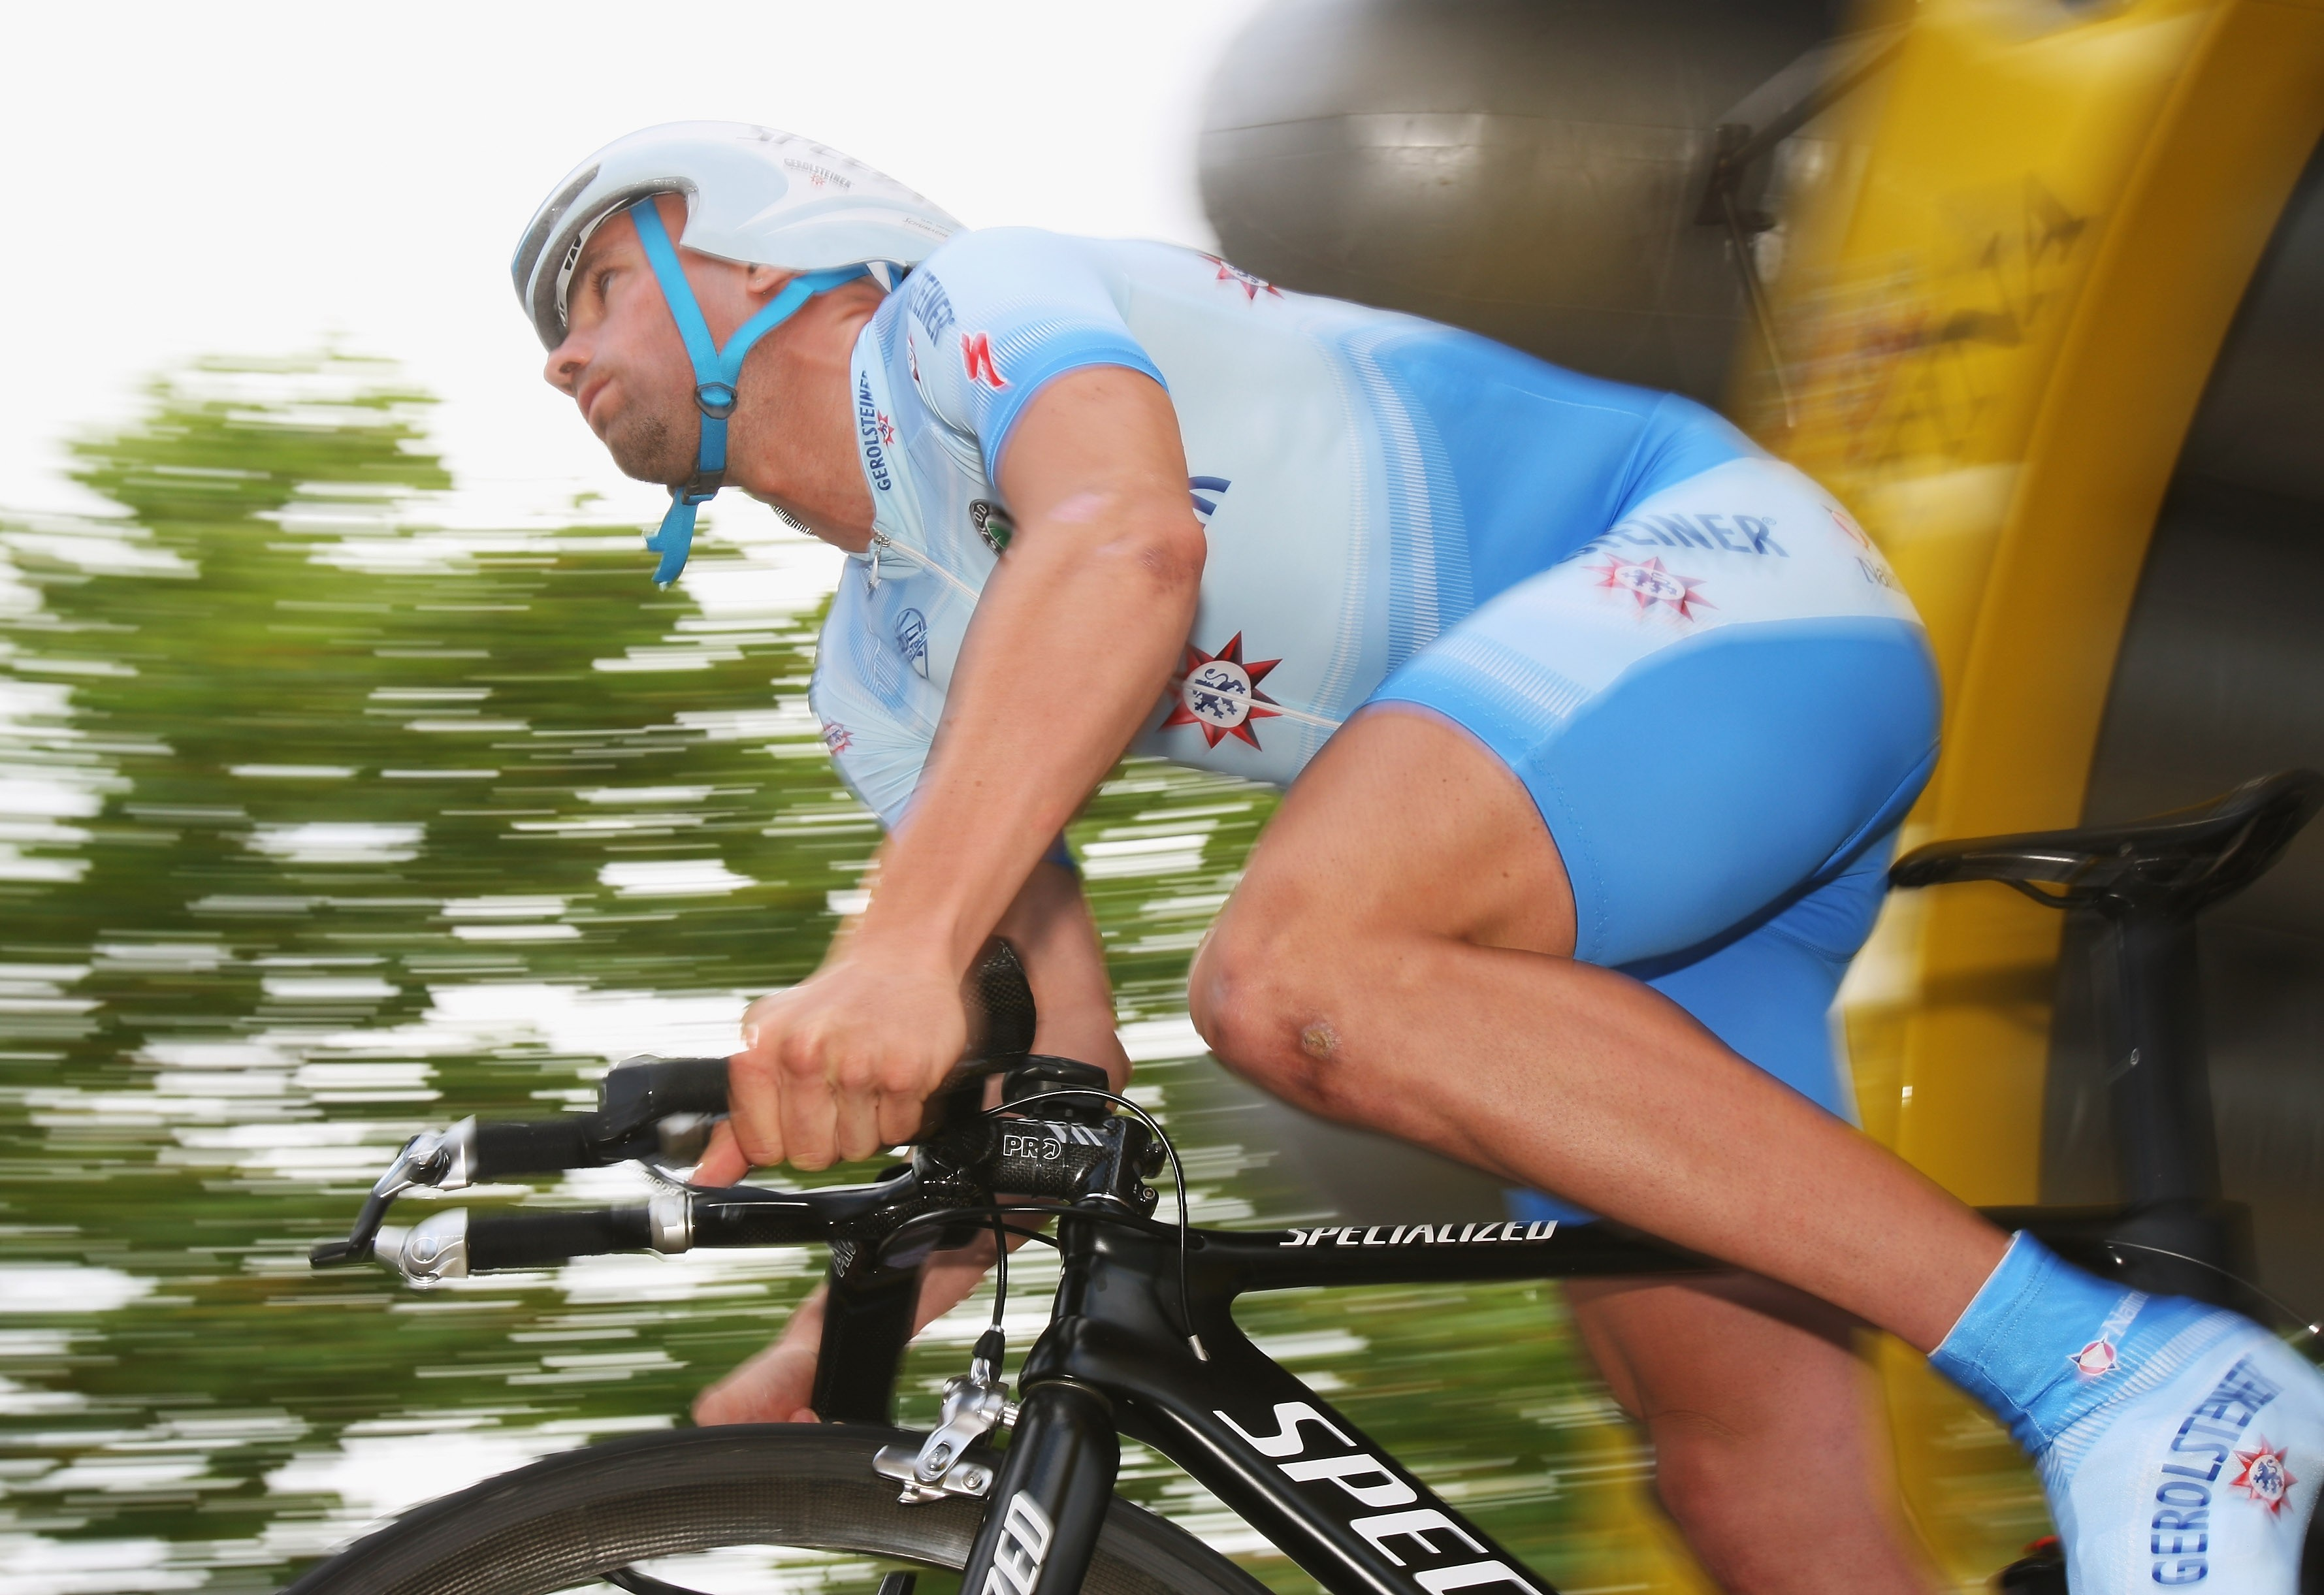 Kohl's ex-teamate Schumacher will be leading his country at the worlds